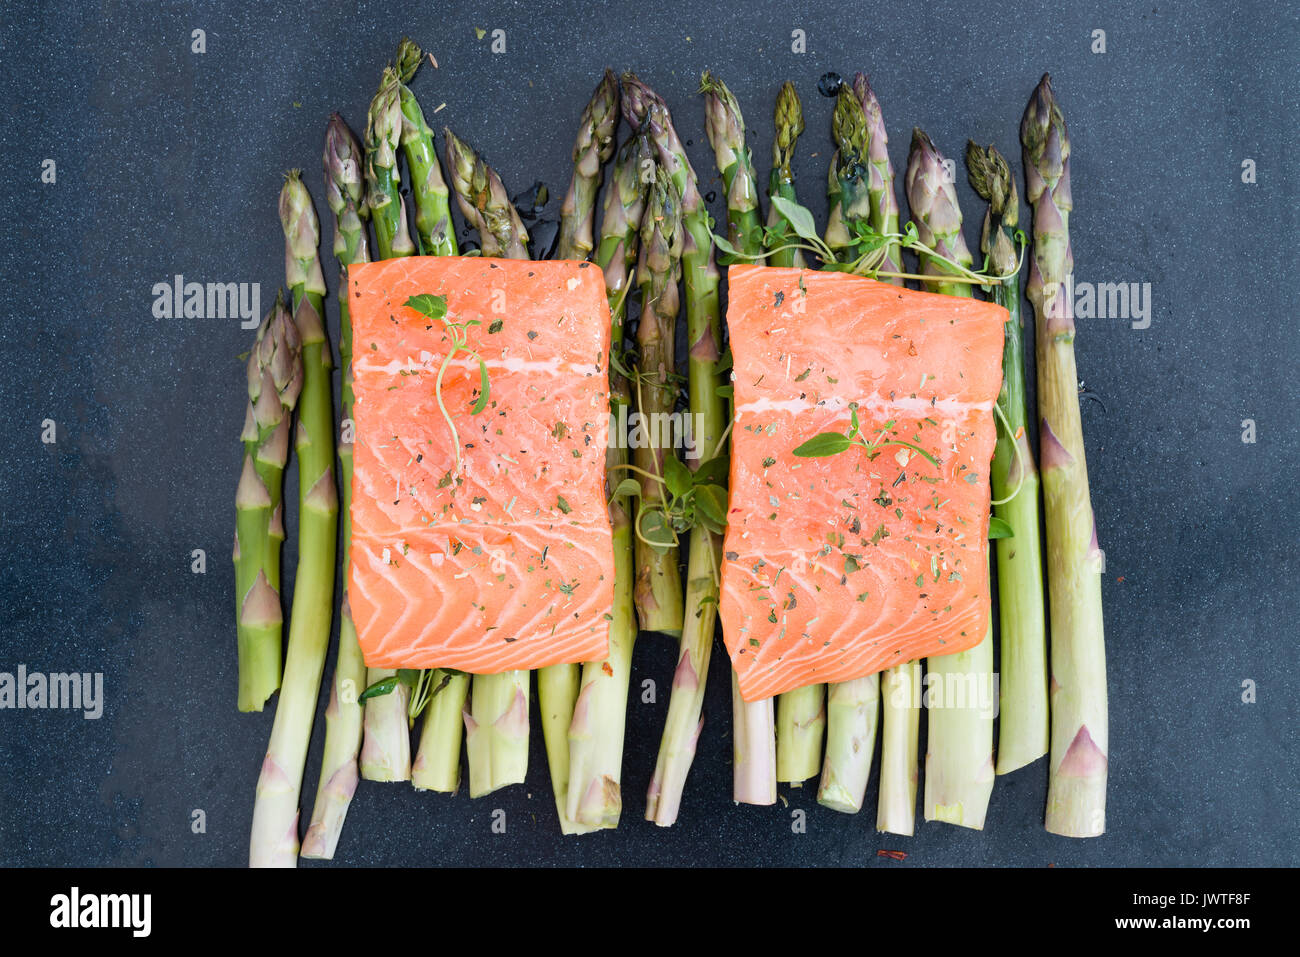 Two pieces of fillet of raw uncooked salmon on green asparagus on baking tray garnished with fresh thyme. Ingredients Stock Photo